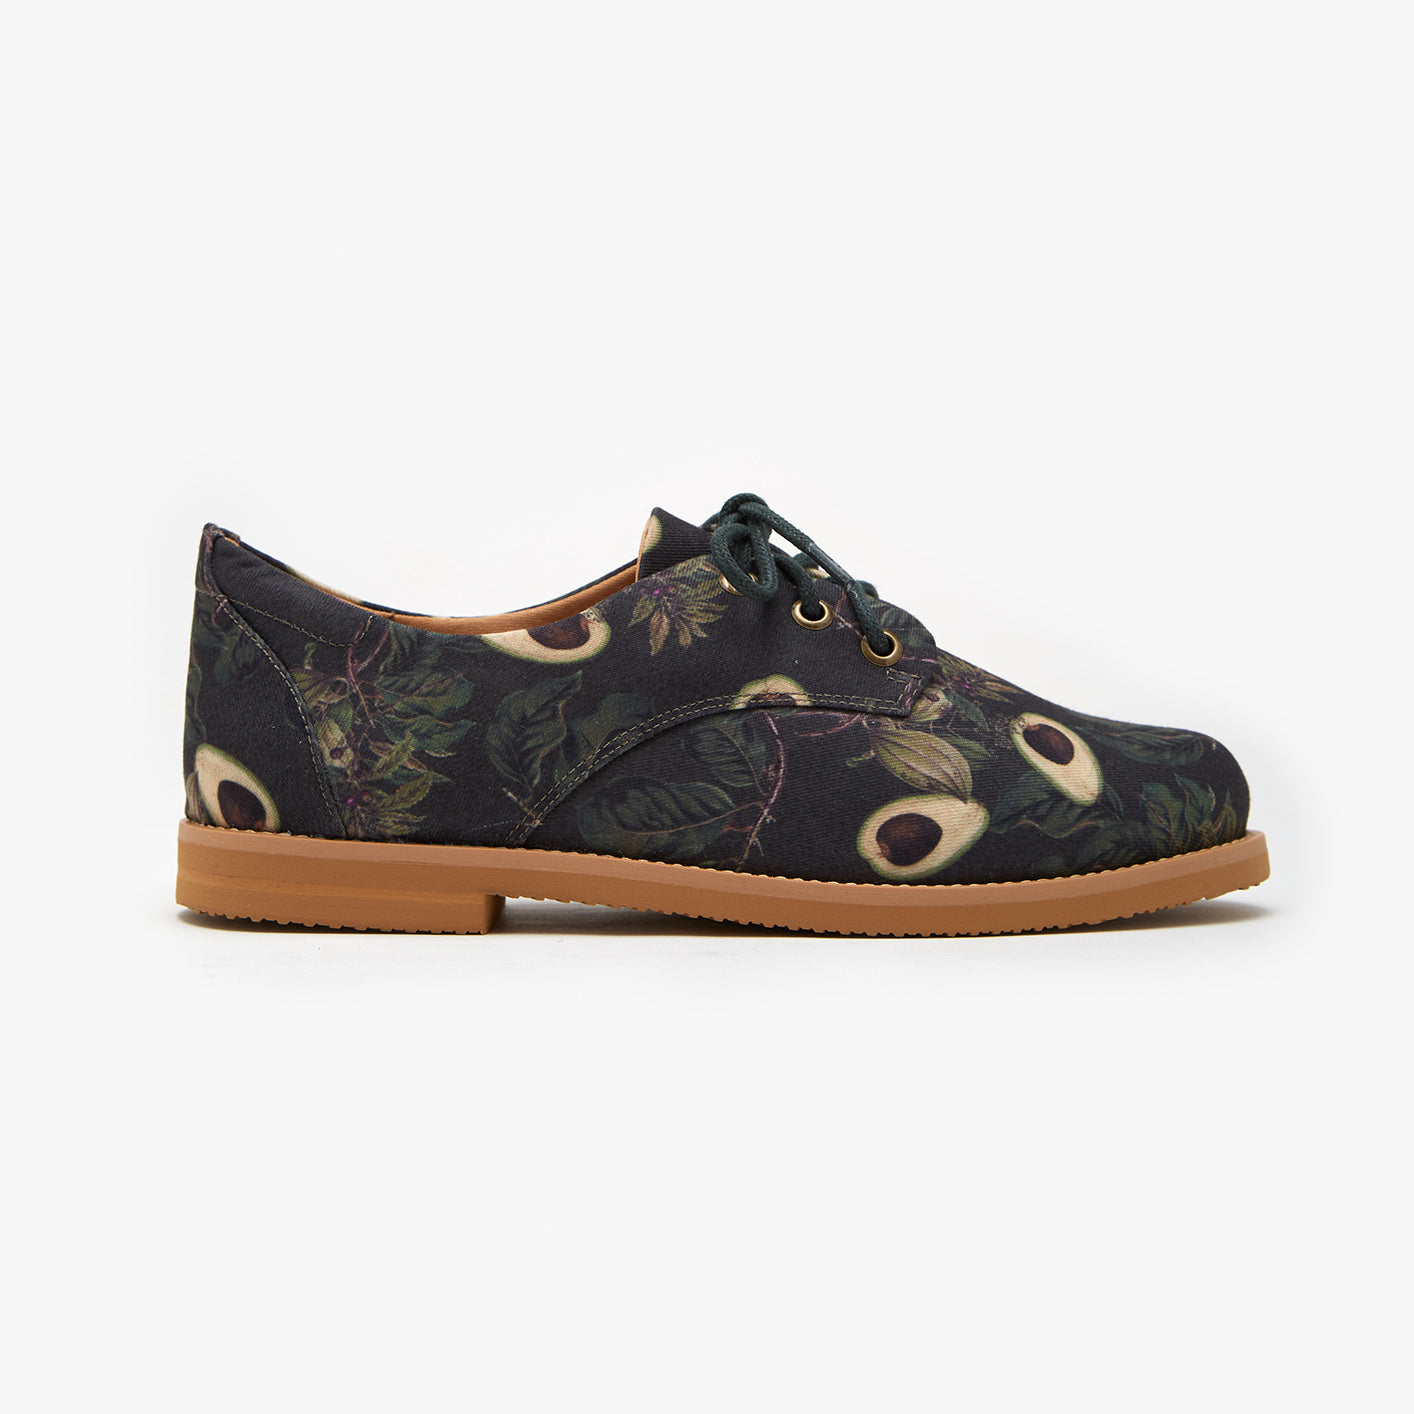 Avo Oxford - Insecta Shoes